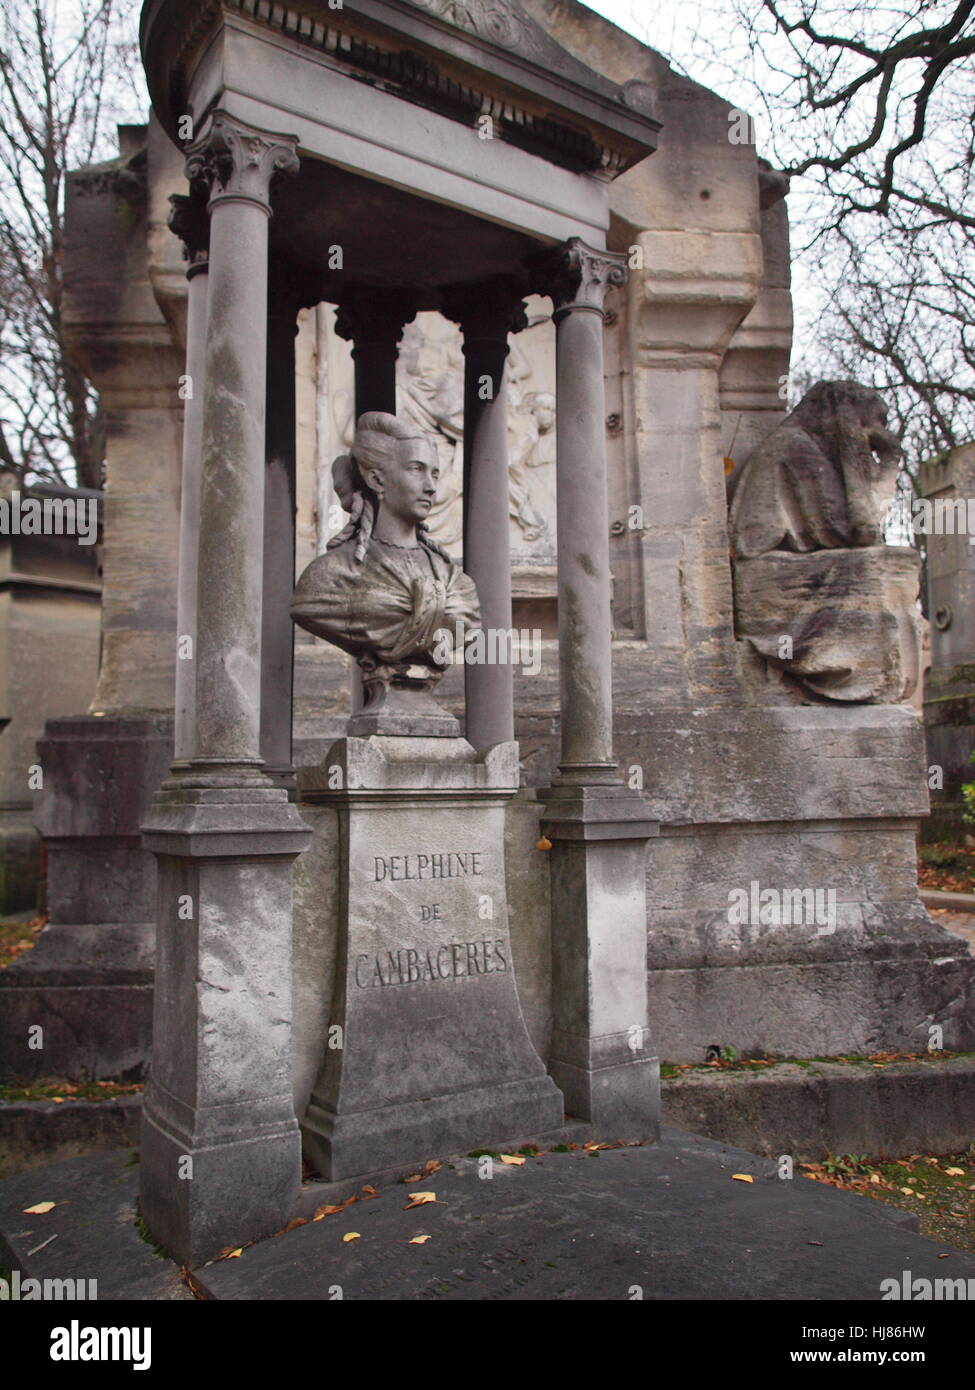 Haunting and Poetic Grave of Delphine de Cambaceres in Pere Lachaise Cemetery Paris - Stock Image